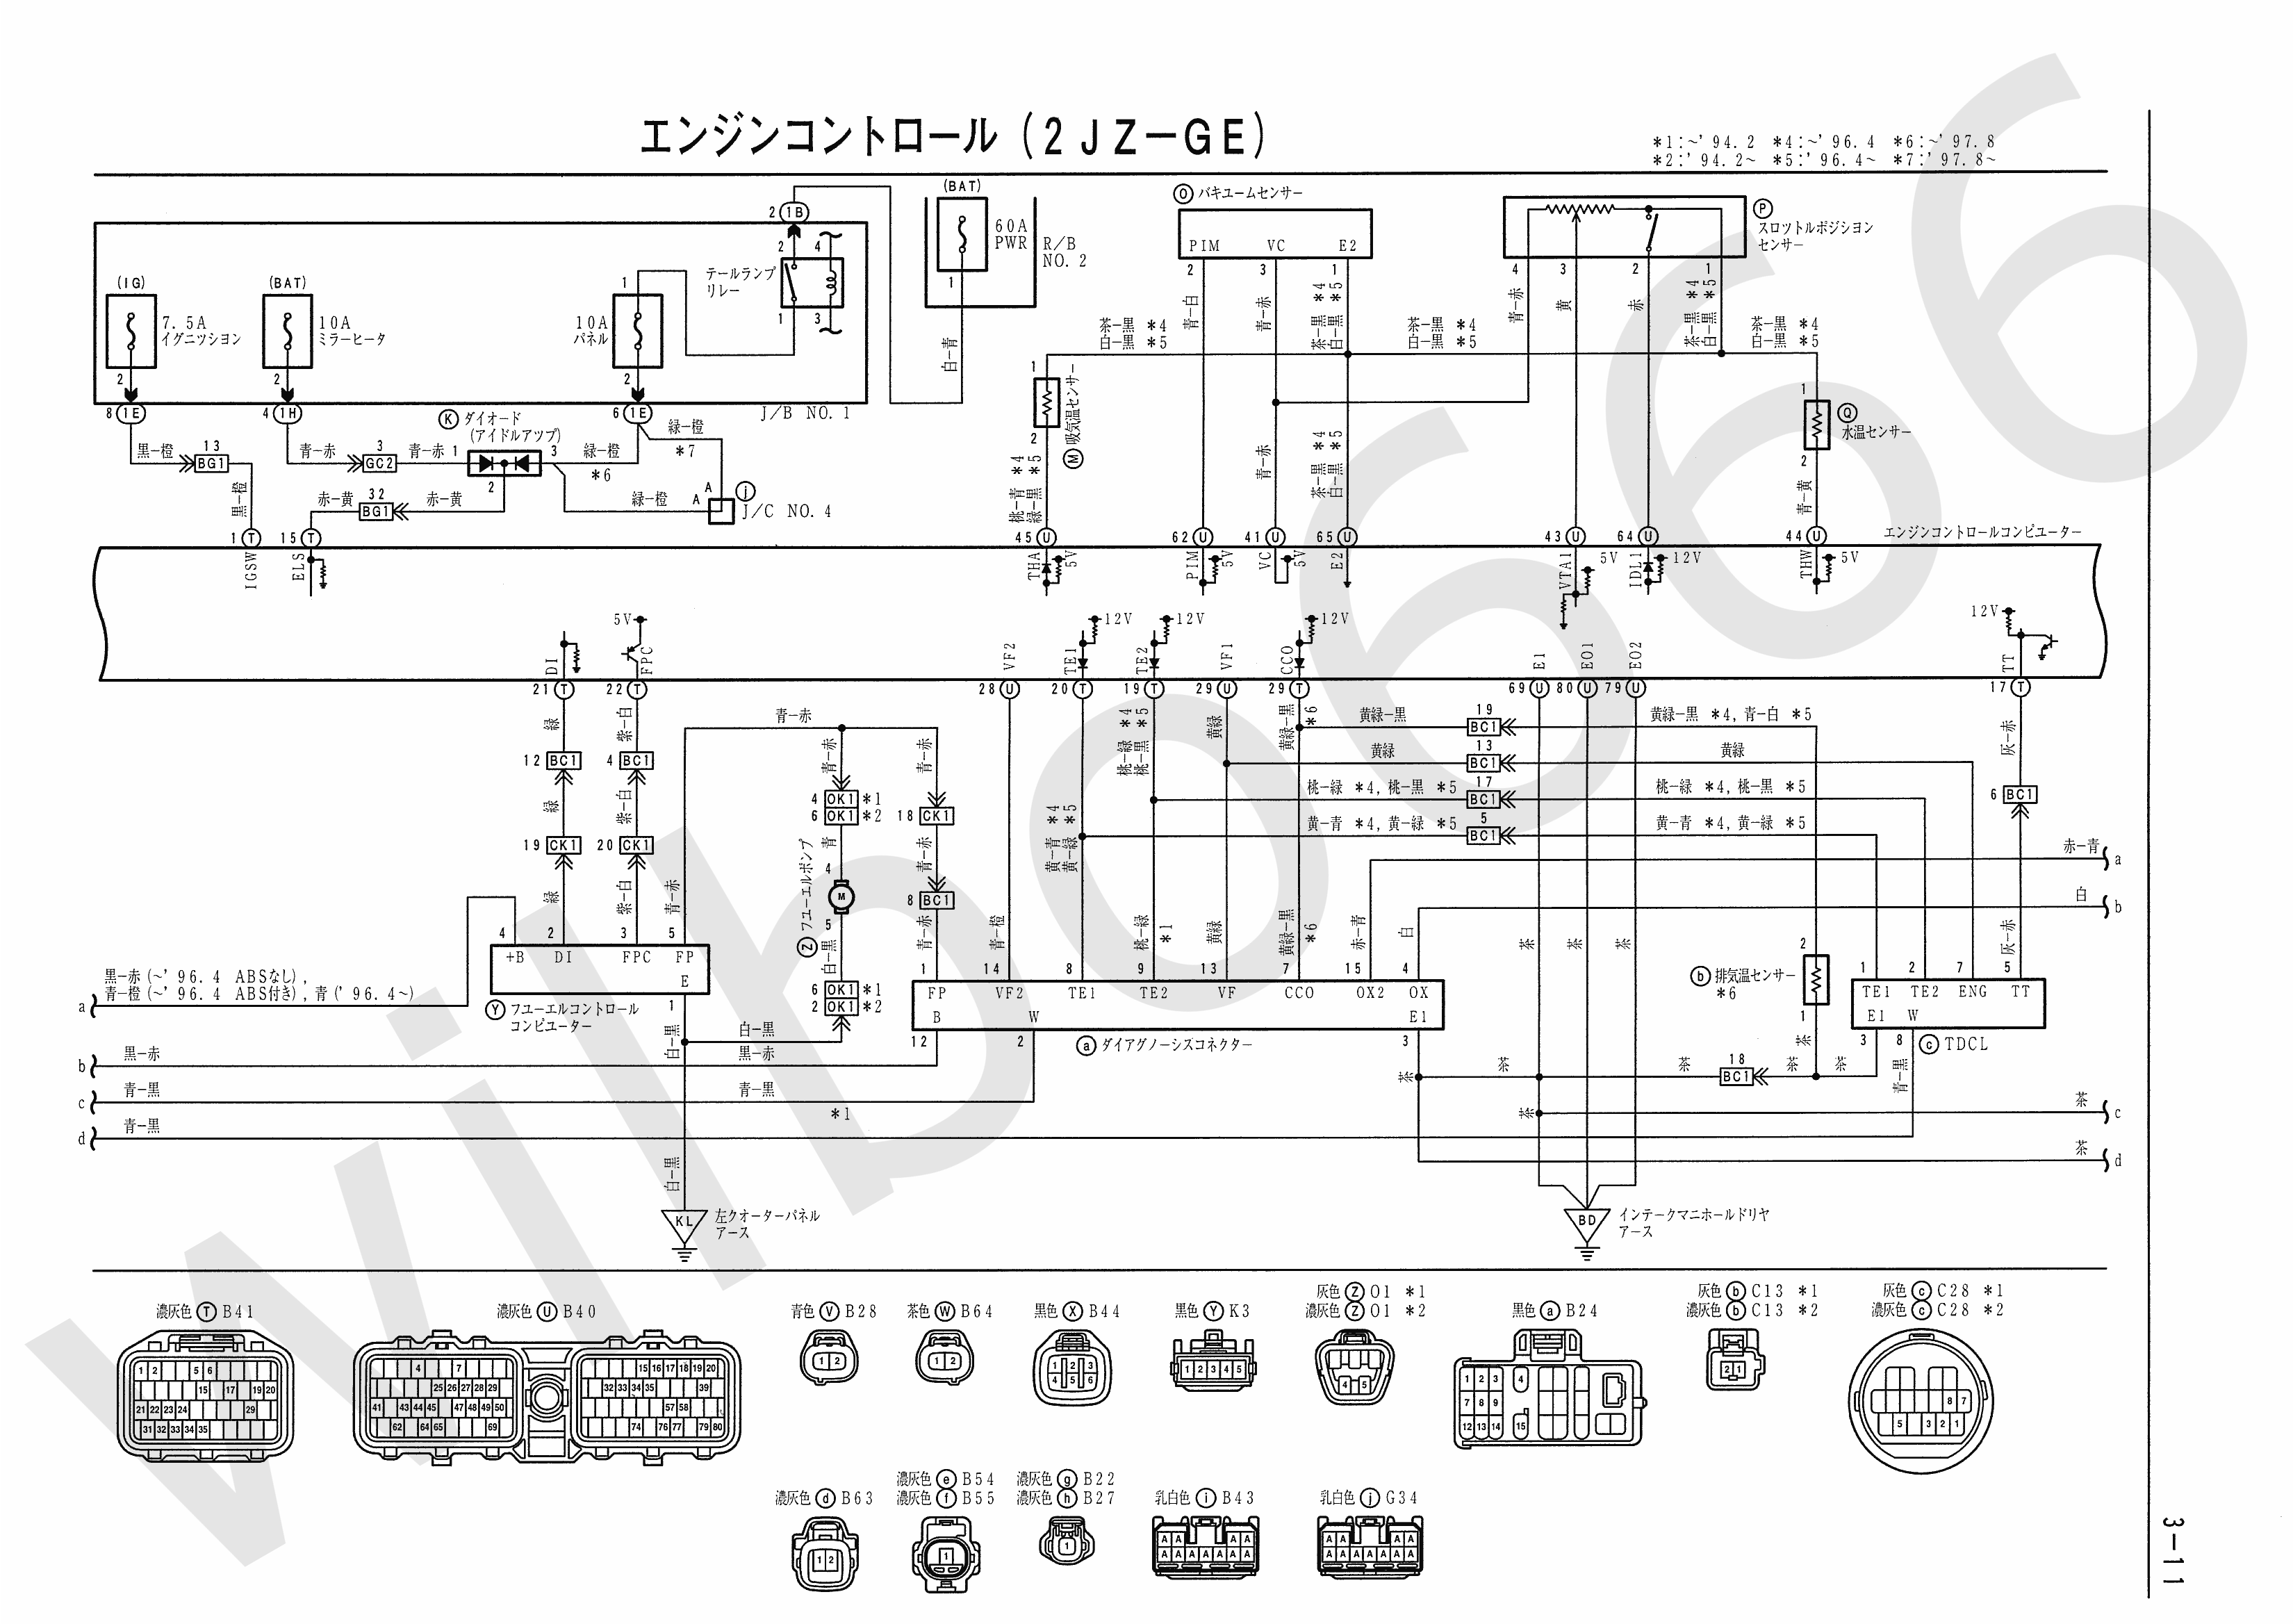 ge rr7 wiring diagram wiring diagram and schematic design Rr7 Relay Wiring Diagram relay fundamentals kele blog rr7 relay wiring diagram